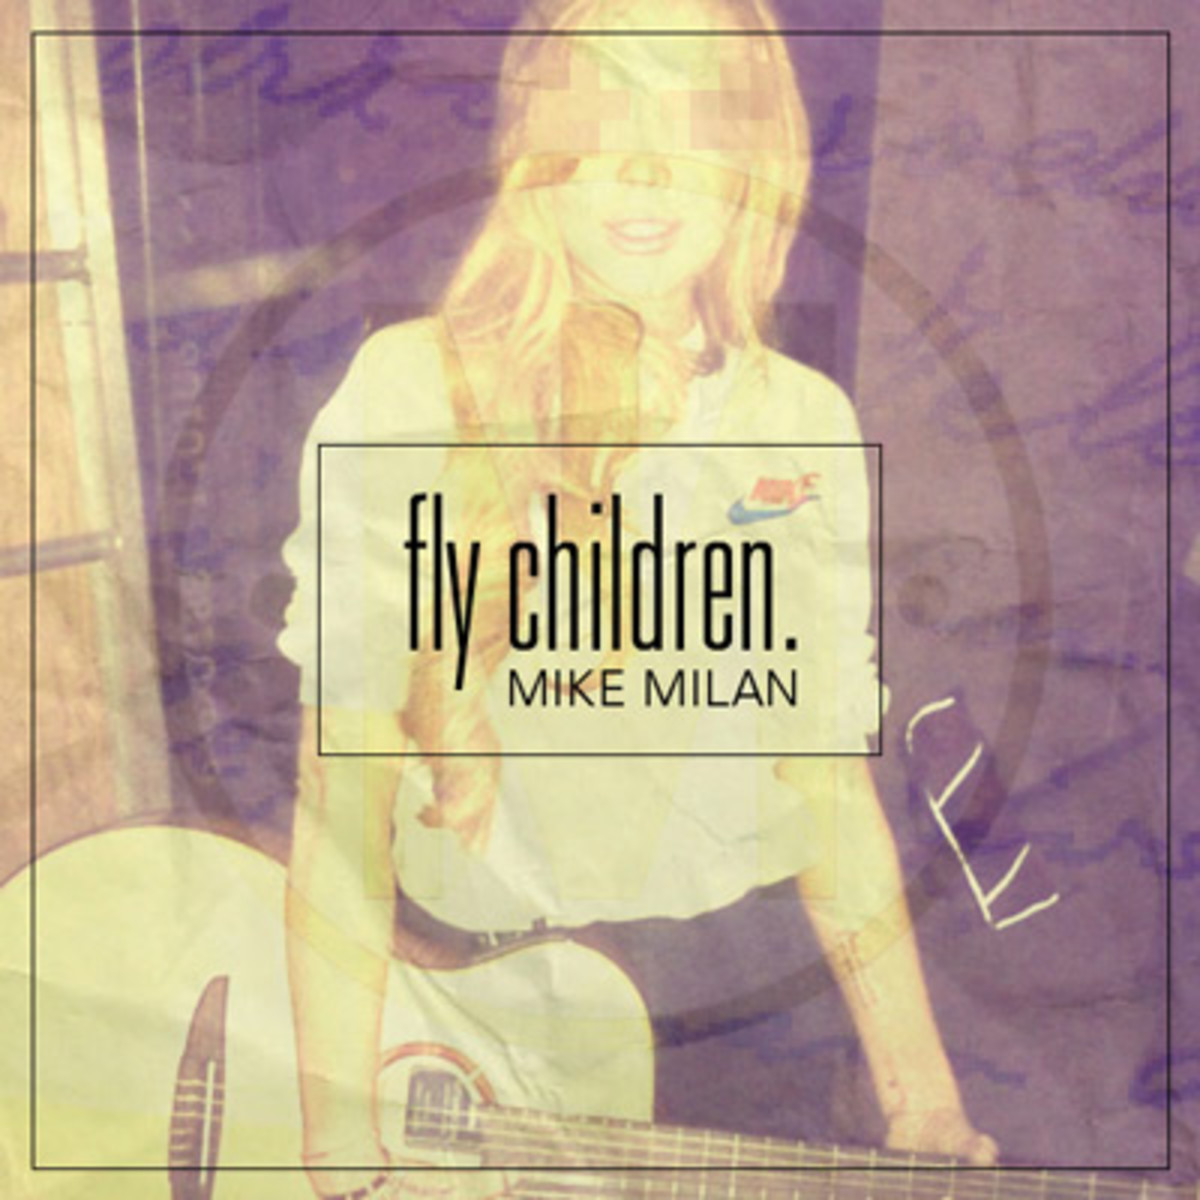 mikemilan-youngchildren.jpg